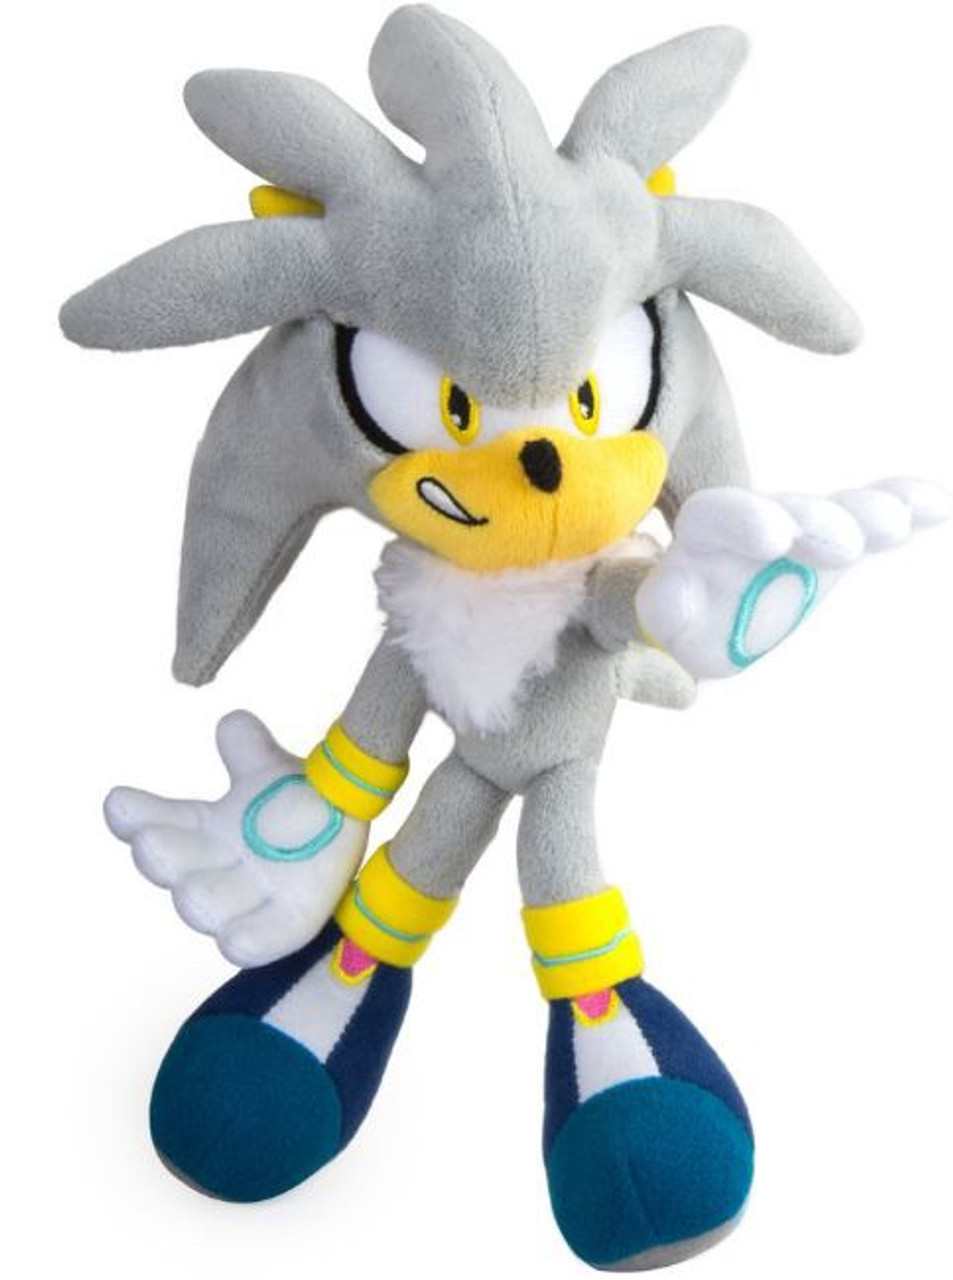 8 Inch Plush Toy Modern Sonic Finger Points Right Sonic the Hedgehog